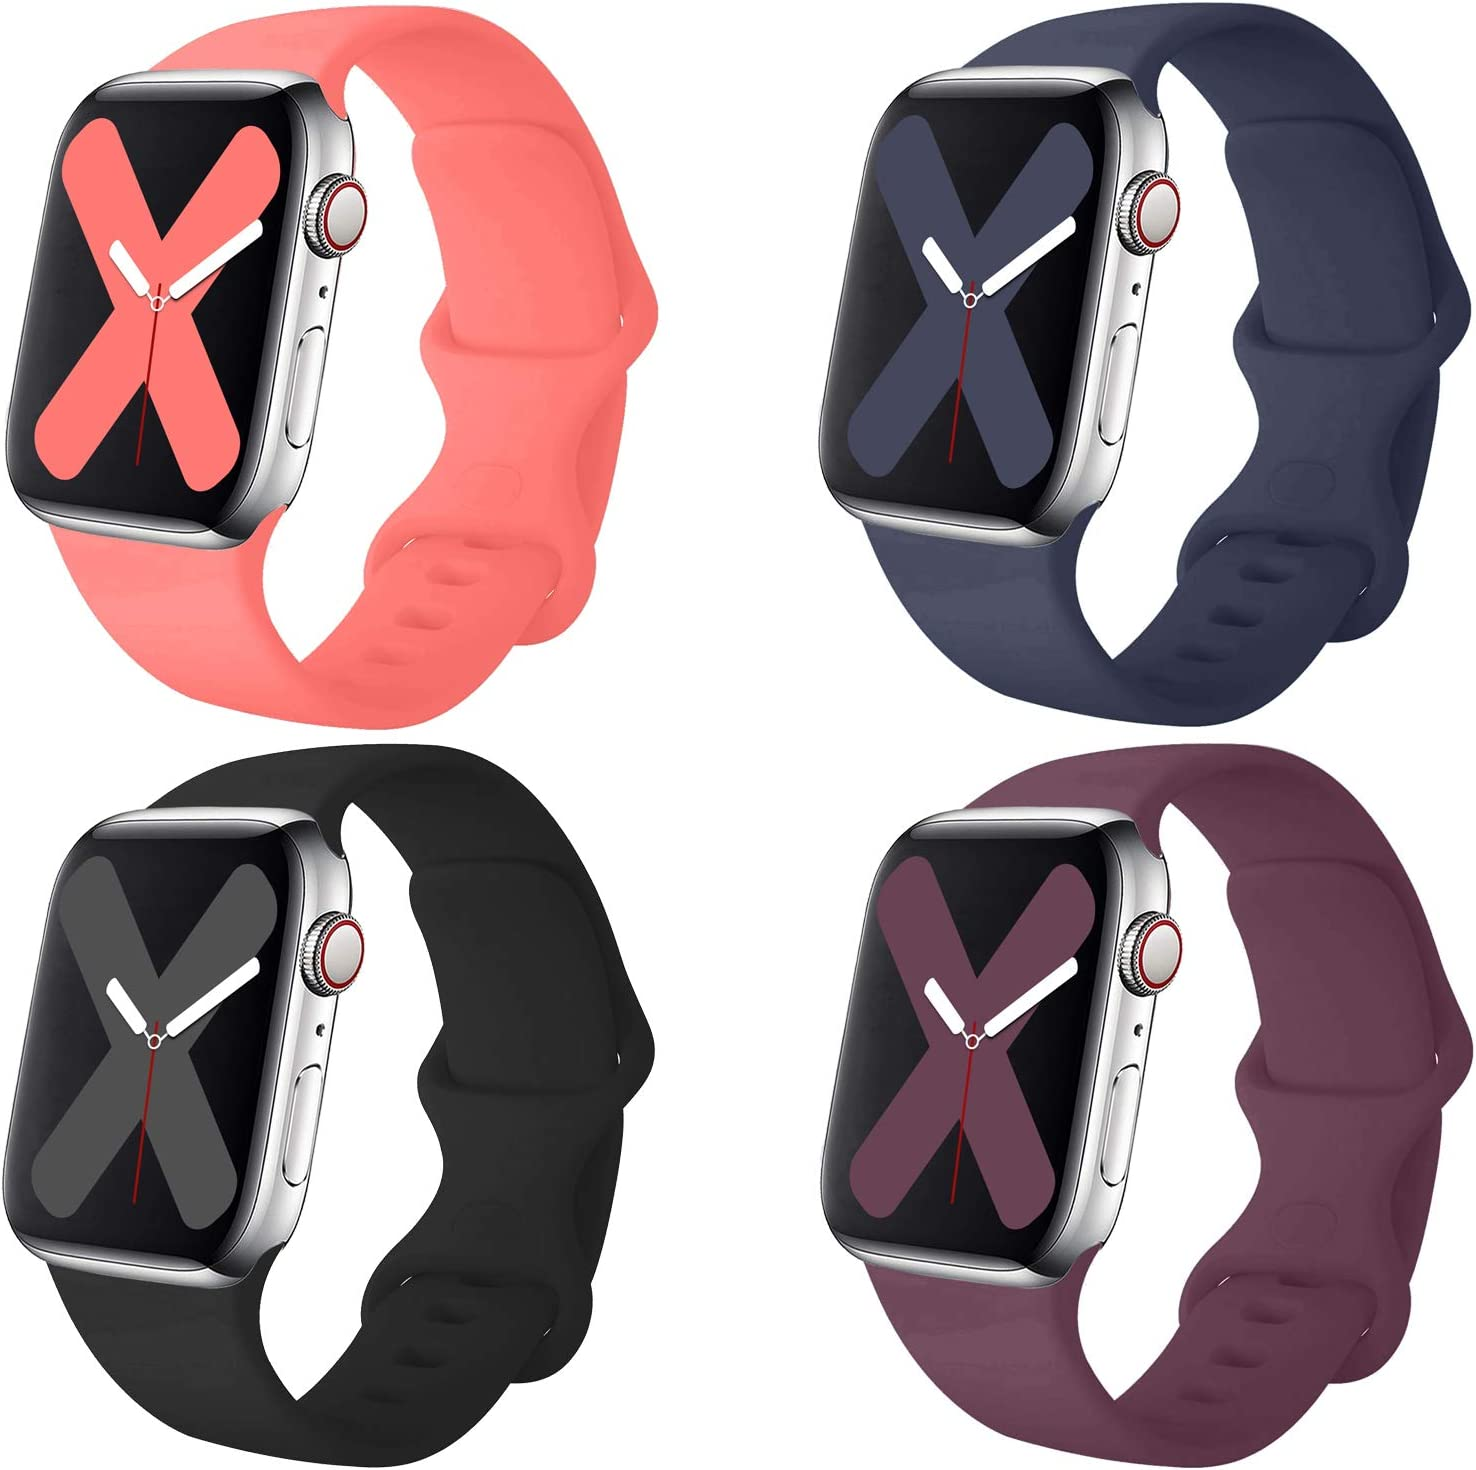 Misker 4 Pack Sport Band Compatible with for Applle Watch Band 38mm 40mm 42mm 44mm, Soft Silicone Sport Strap Compatible with iWatch Series 5 4 3 2 22